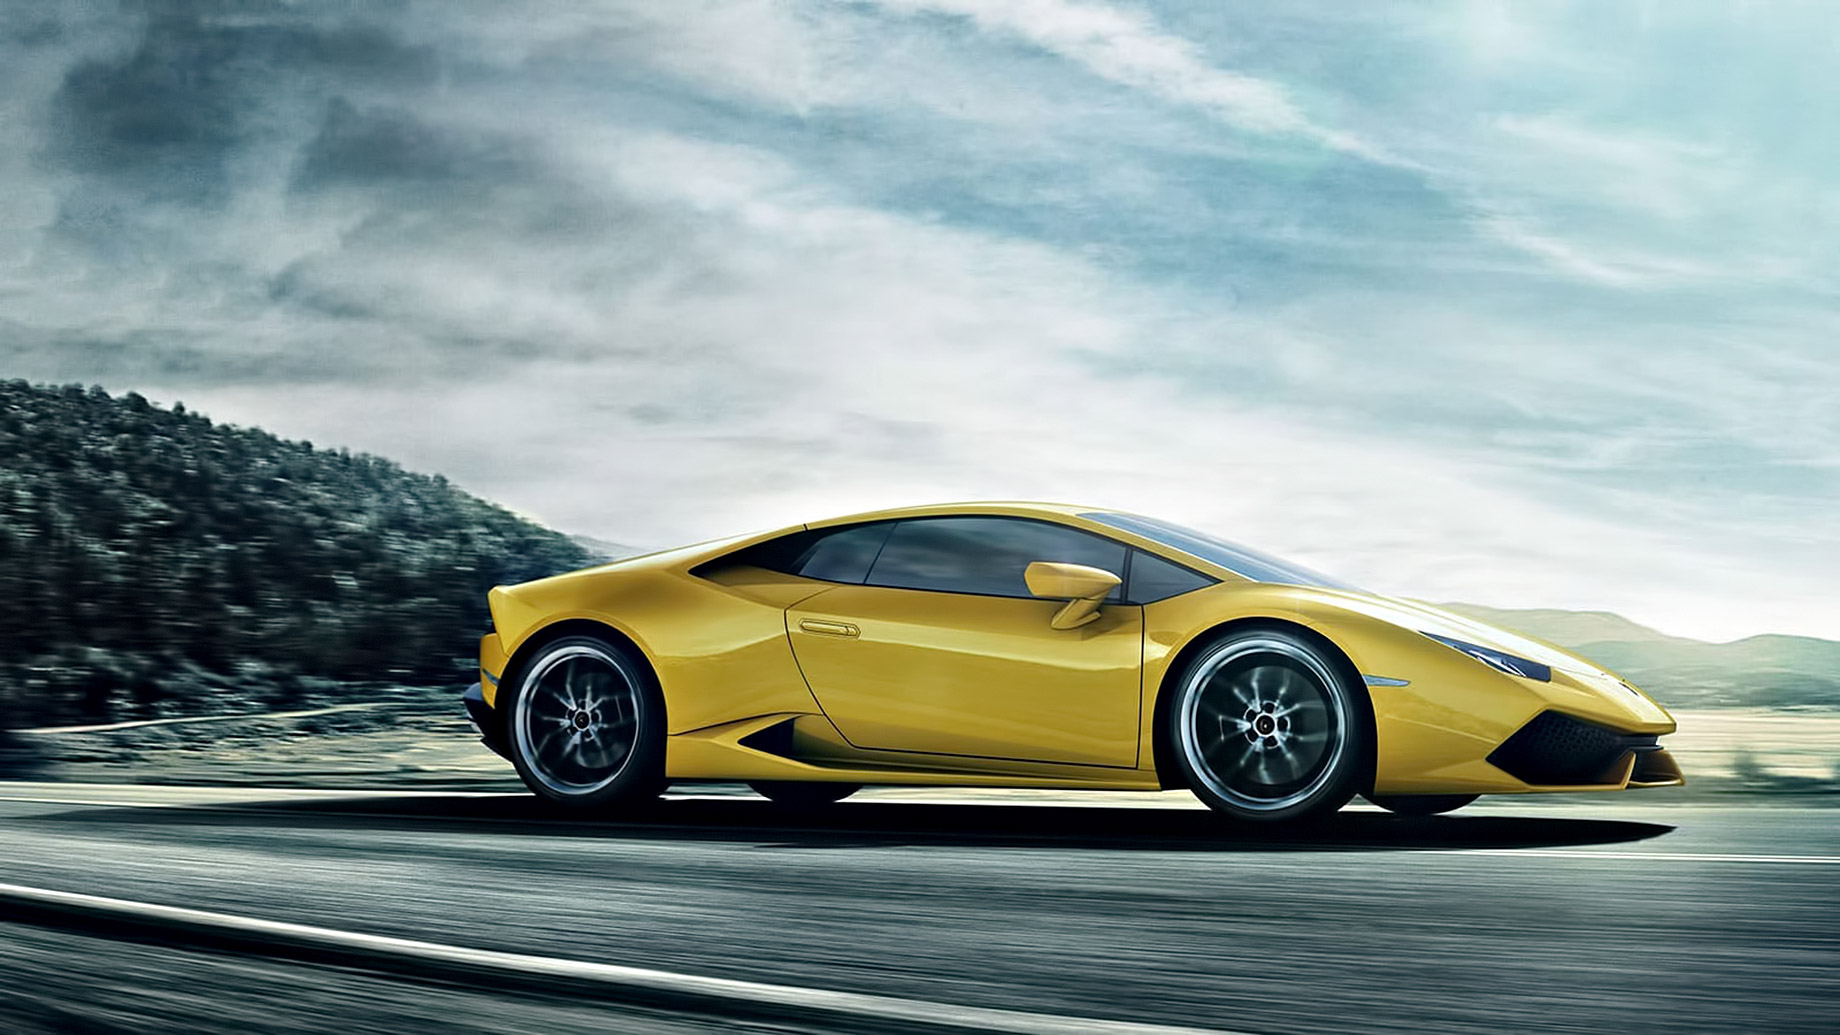 Lamborghini Huracan – Dreaming Big – 6 Luxury Items You Could Purchase if Money Was No Object